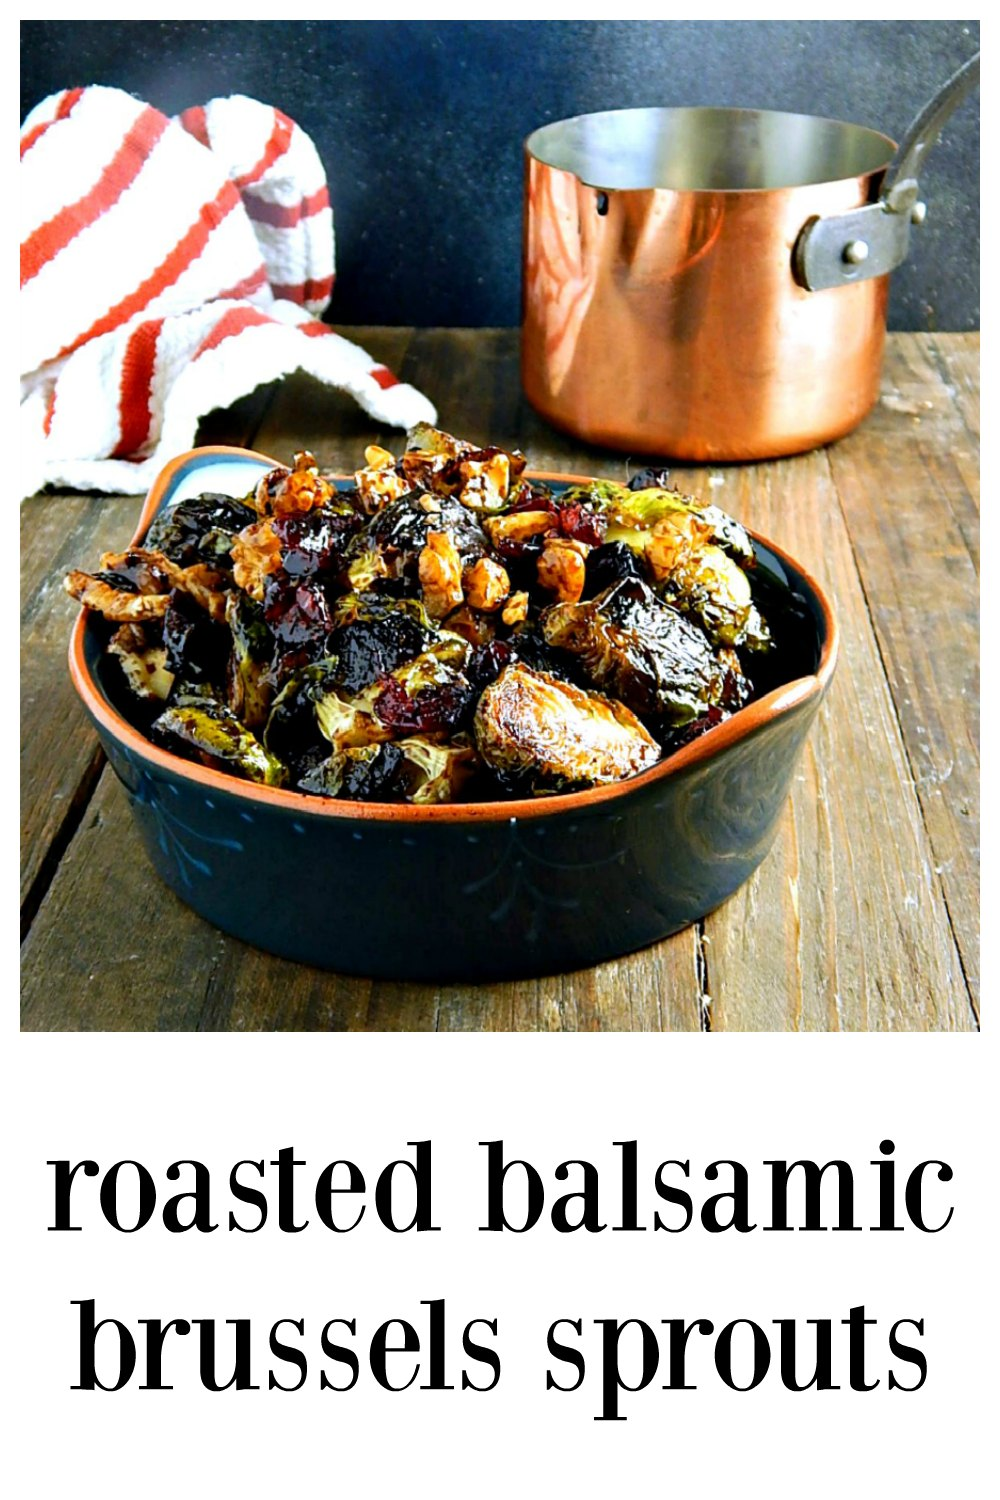 Fabulous as a fancy dinner or holiday side, marvelous as an appetizer, these Roasted Balsamic Brussels Sprouts are everything! Super easy & make-ahead or not. #BrusselsSprouts #BalsamicRoastedBrusselsSprouts #OvenRoastedBrusselsSprouts